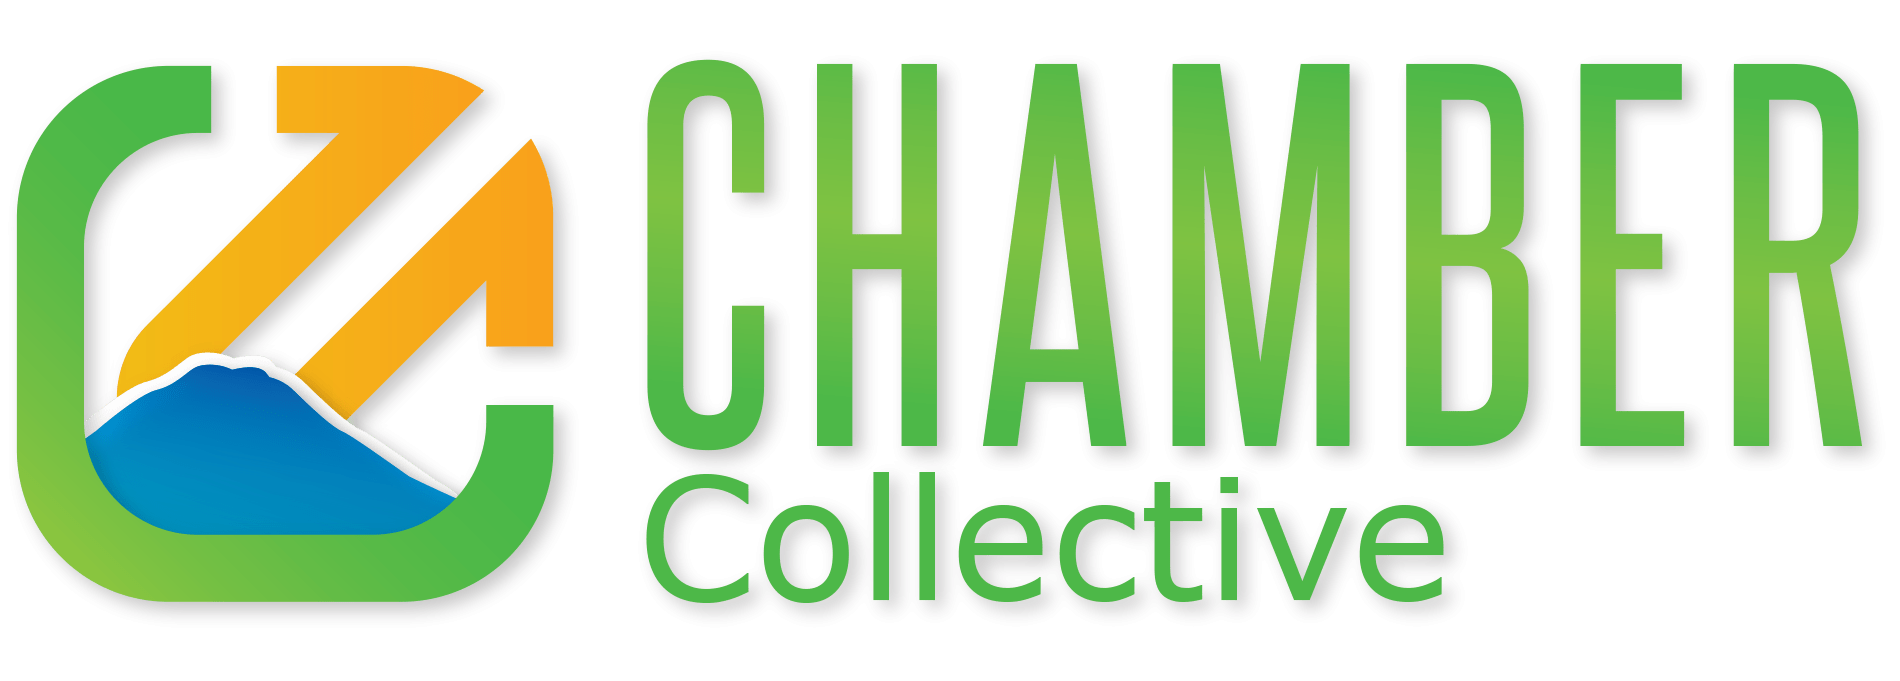 The Chamber Collective